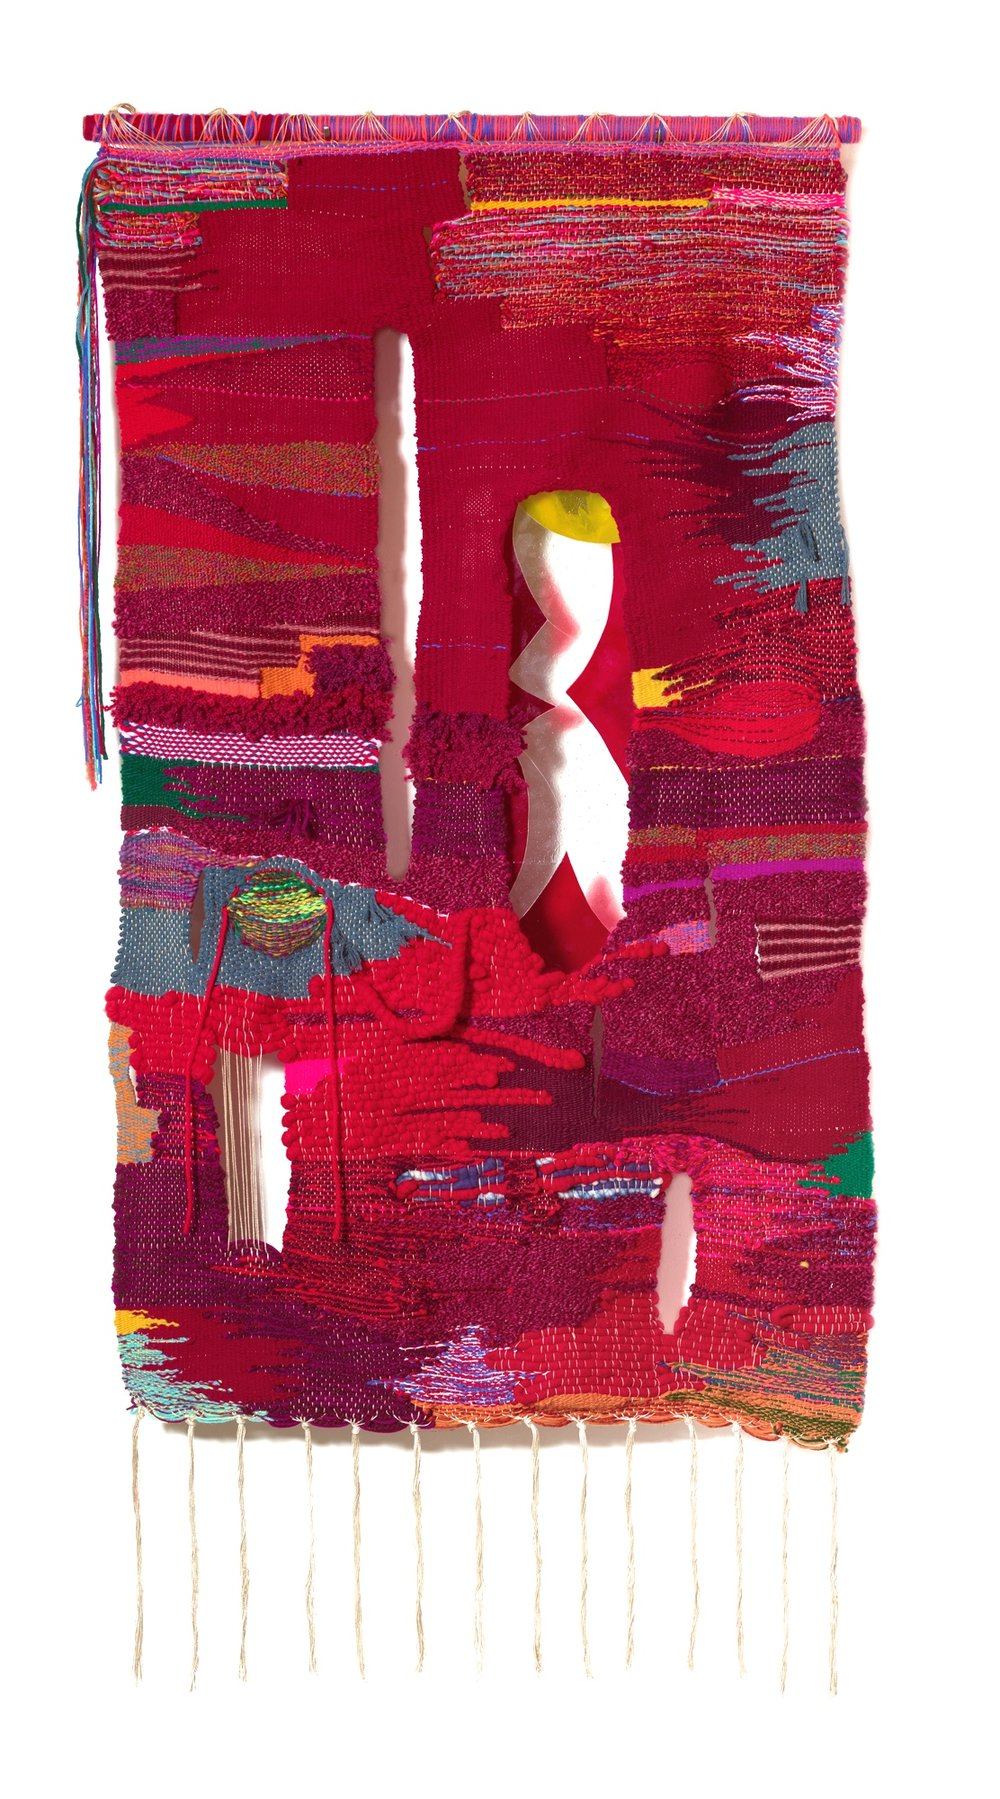 Terri Friedman Fermented, 2019, 40 x 76, wool, cotton, acrylic, metallic fibers, fused glass, $12,000